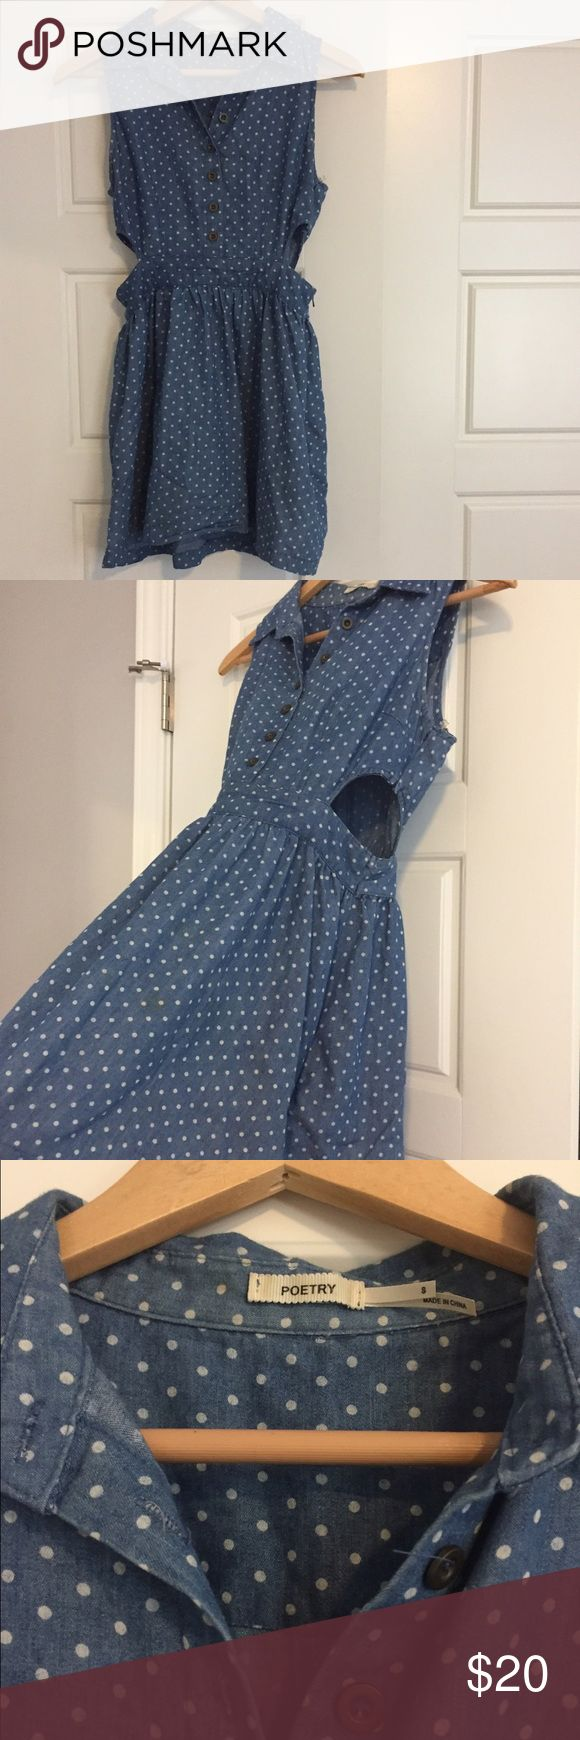 Poetry brand blue polka dot dress w cutouts Adorable blue dress with white polka dots. Buttons up in the front and has diamond cut outs on the sides. Zips up on left side. Poetry Dresses